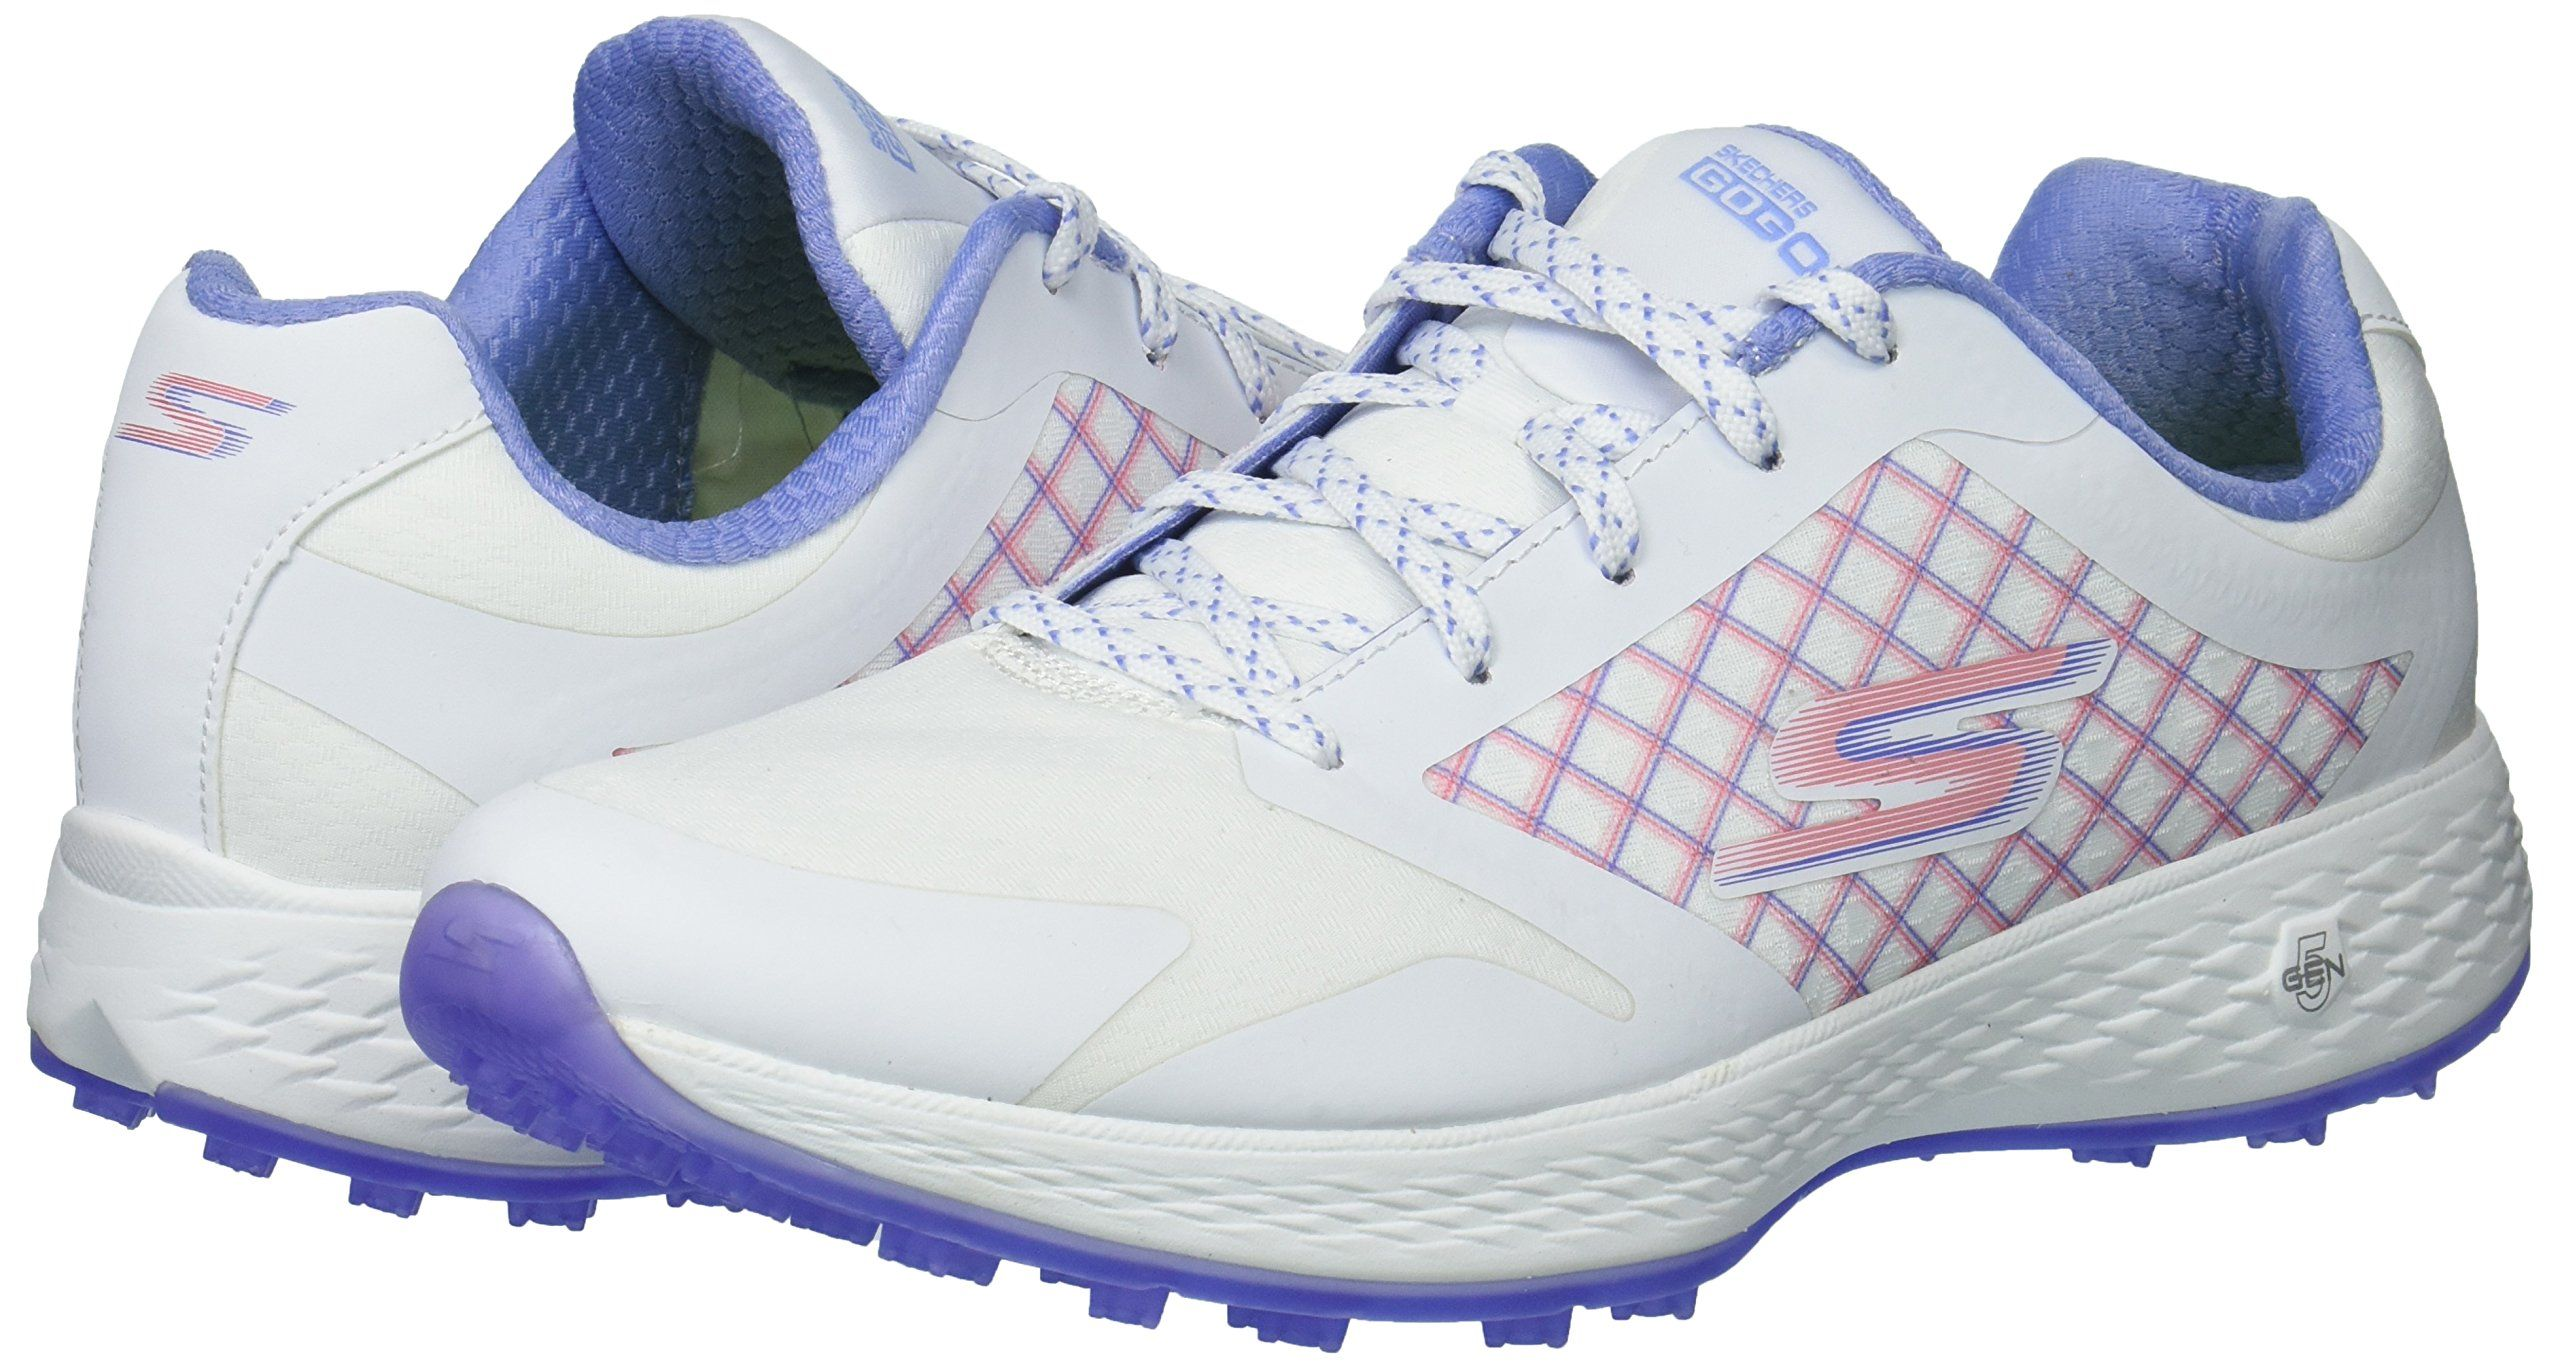 Skechers Performance Womens Go Eagle Rival GolfShoesWhite